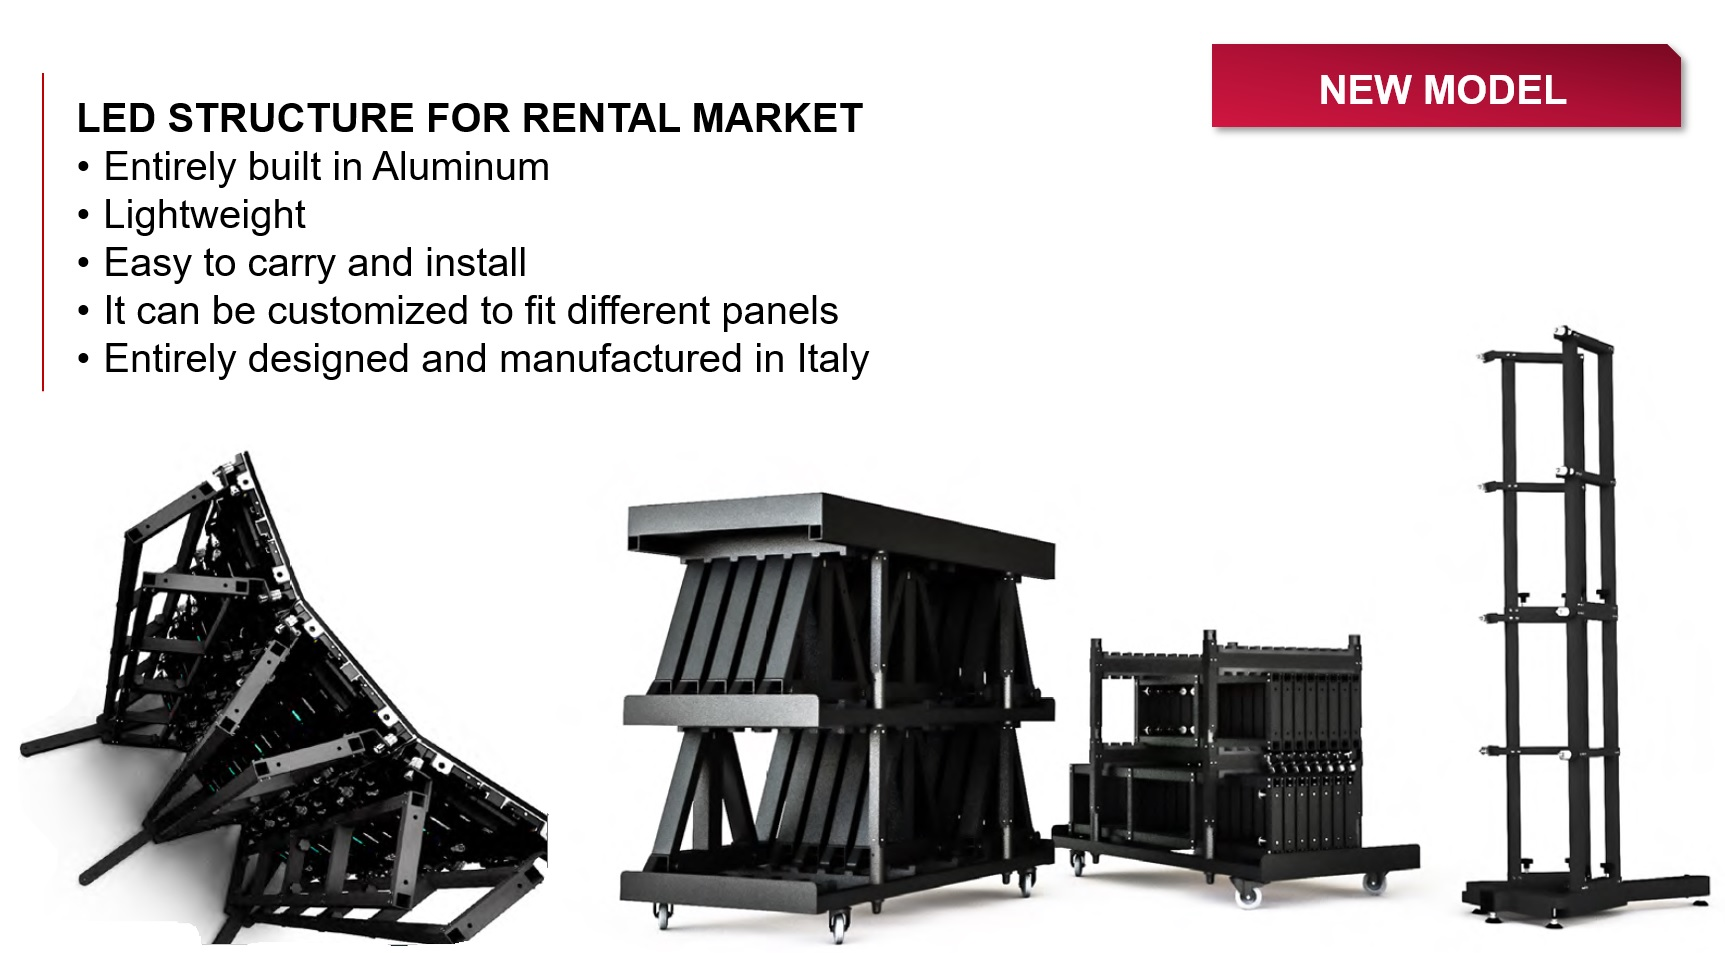 LED Structures dedicated to RENTAL market